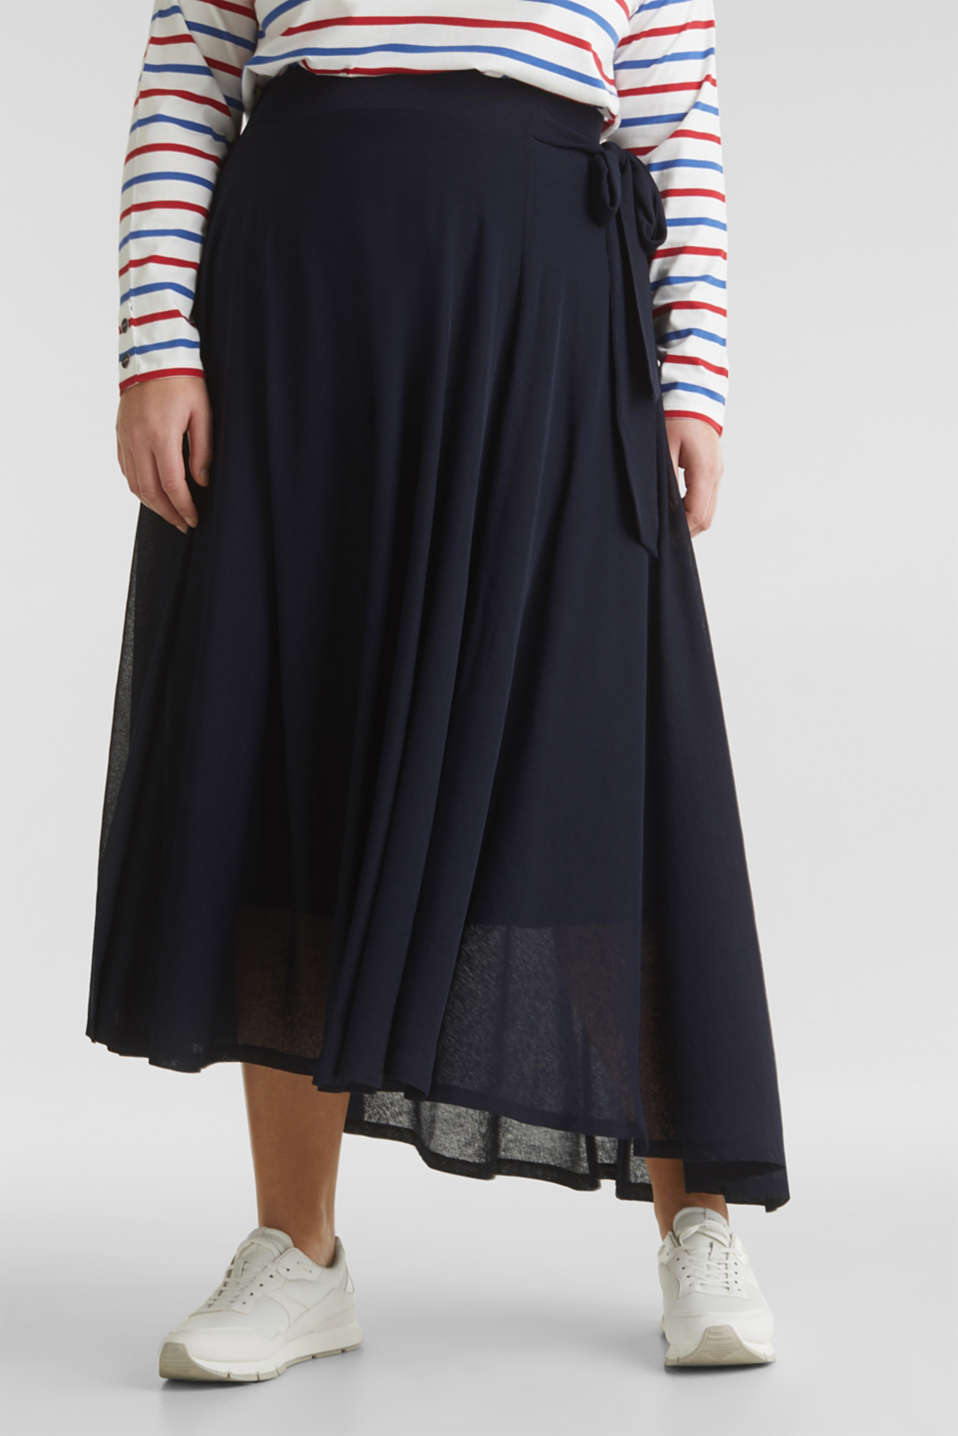 CURVY A-line jersey skirt, NAVY, detail image number 0